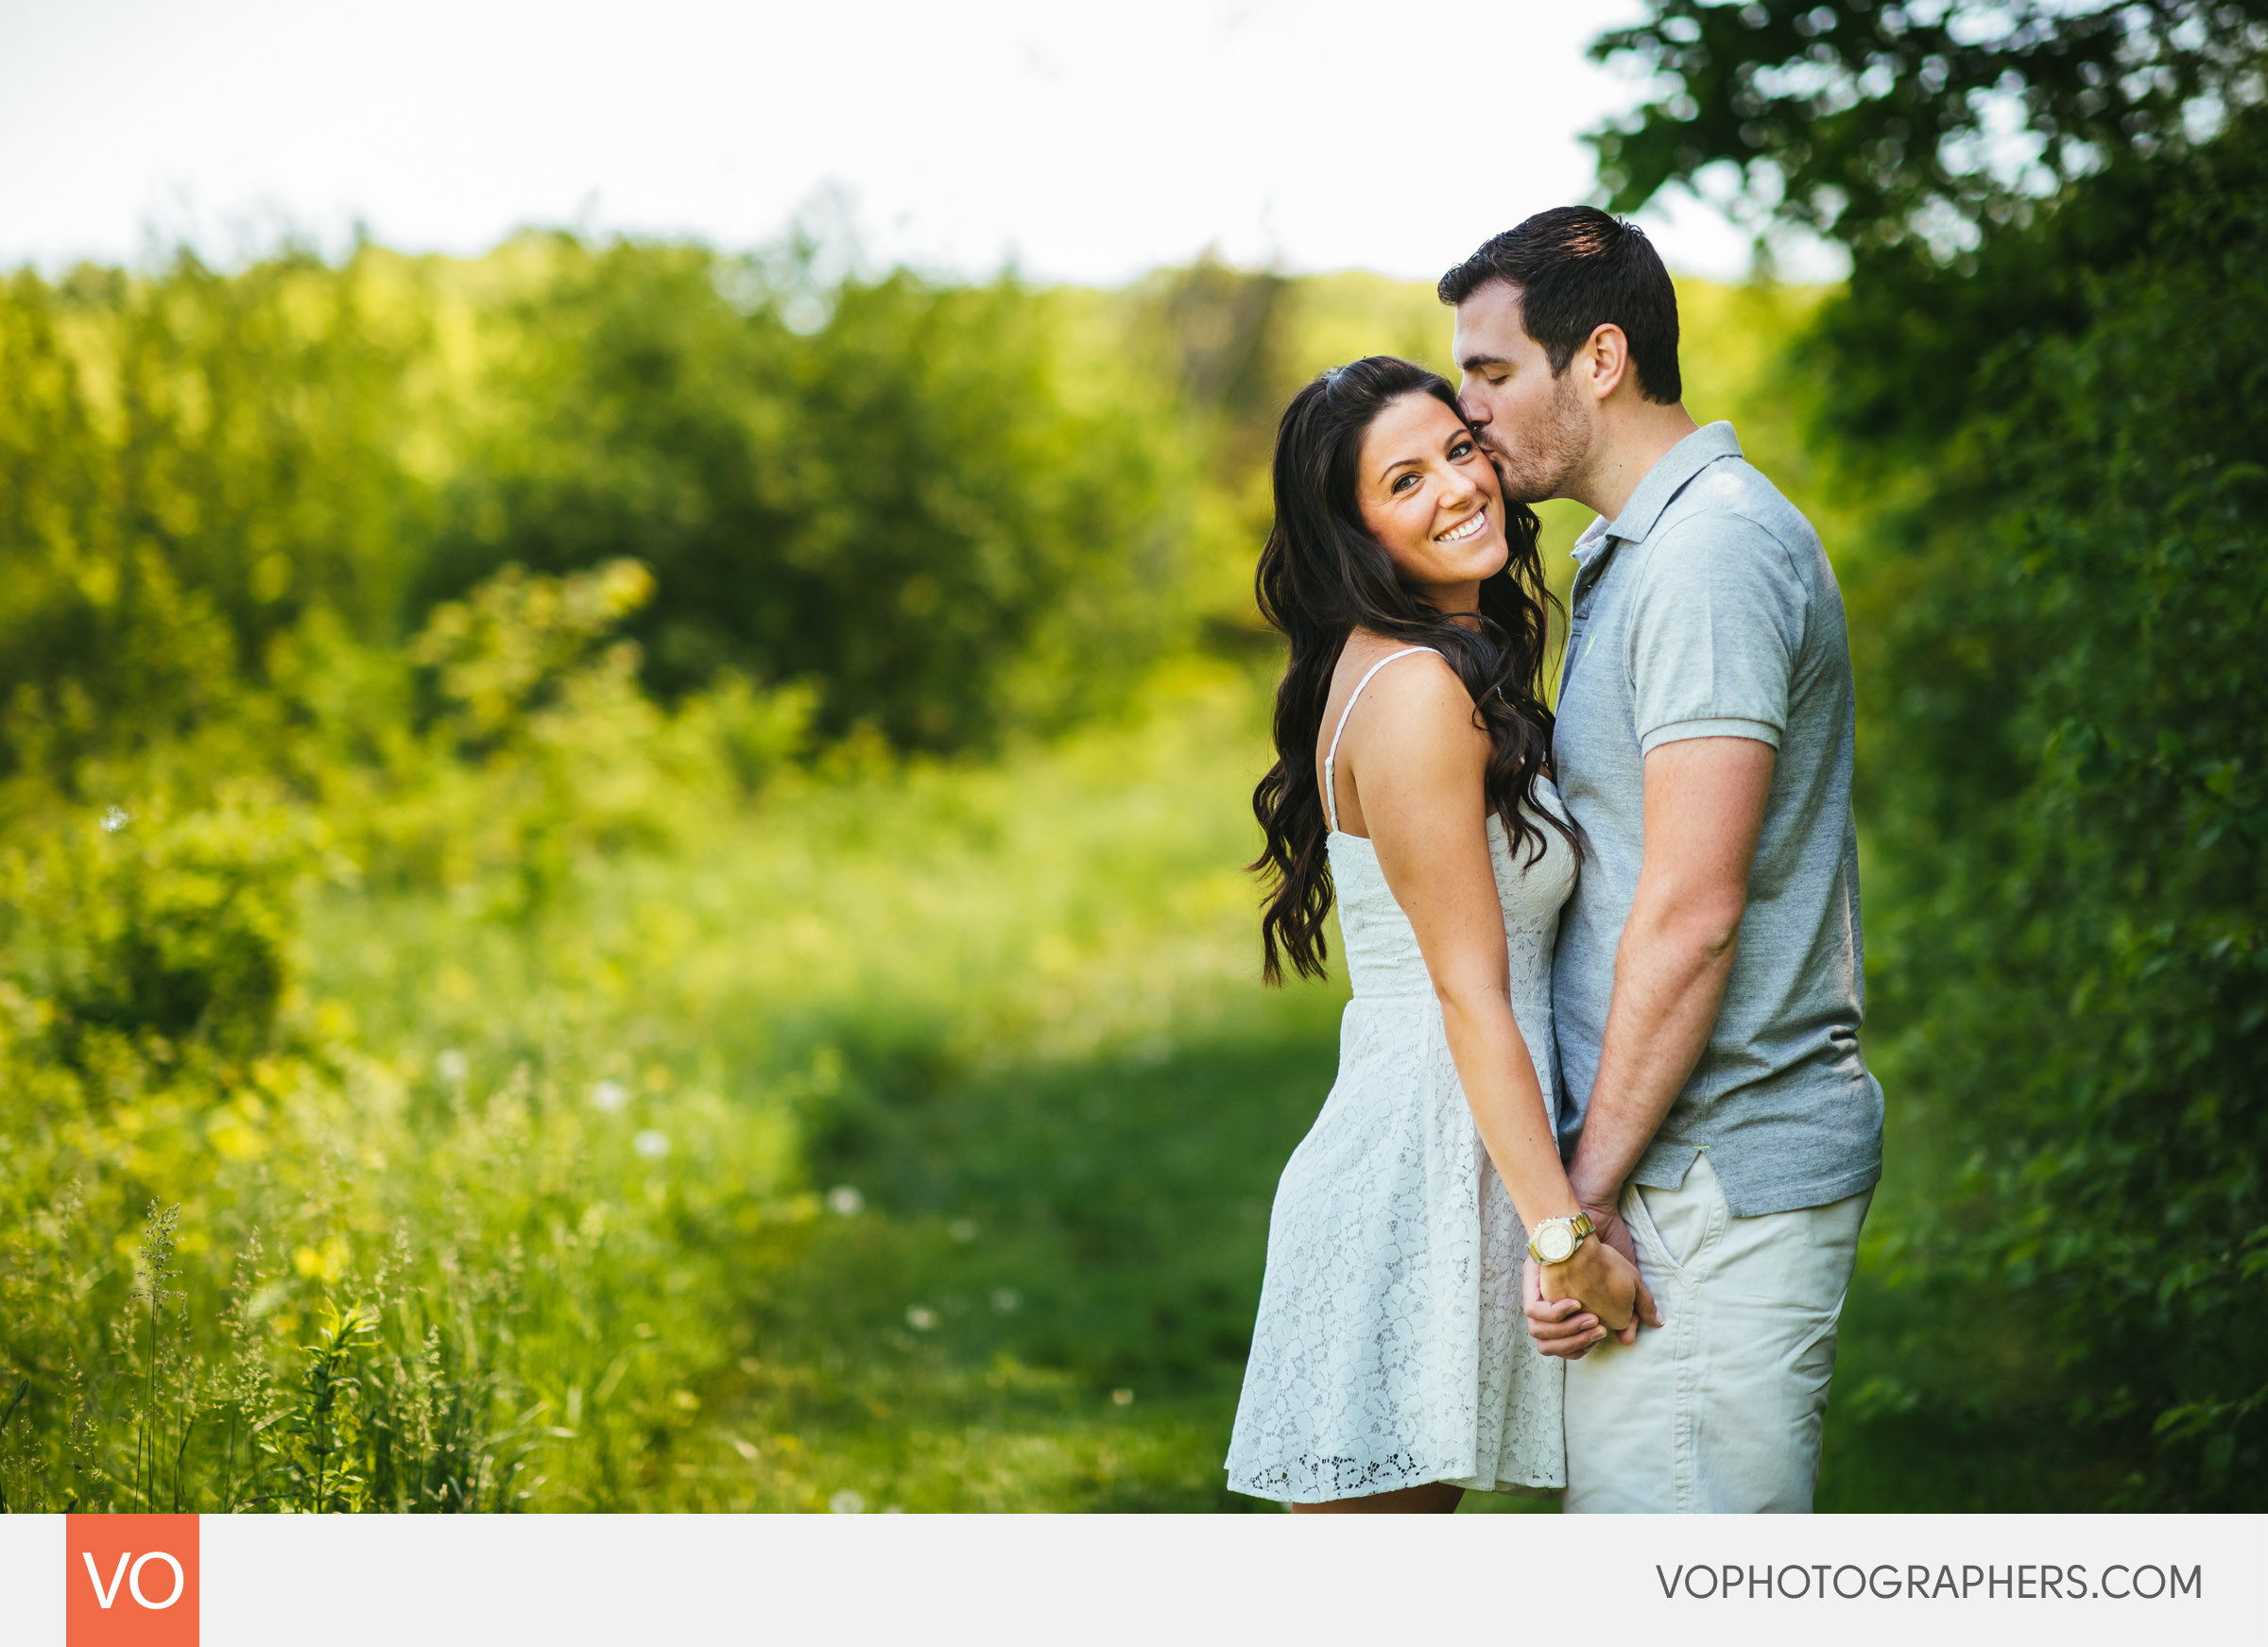 Hillstead-Museum-Farmington-Engagement-Alyssa-Mike-0003